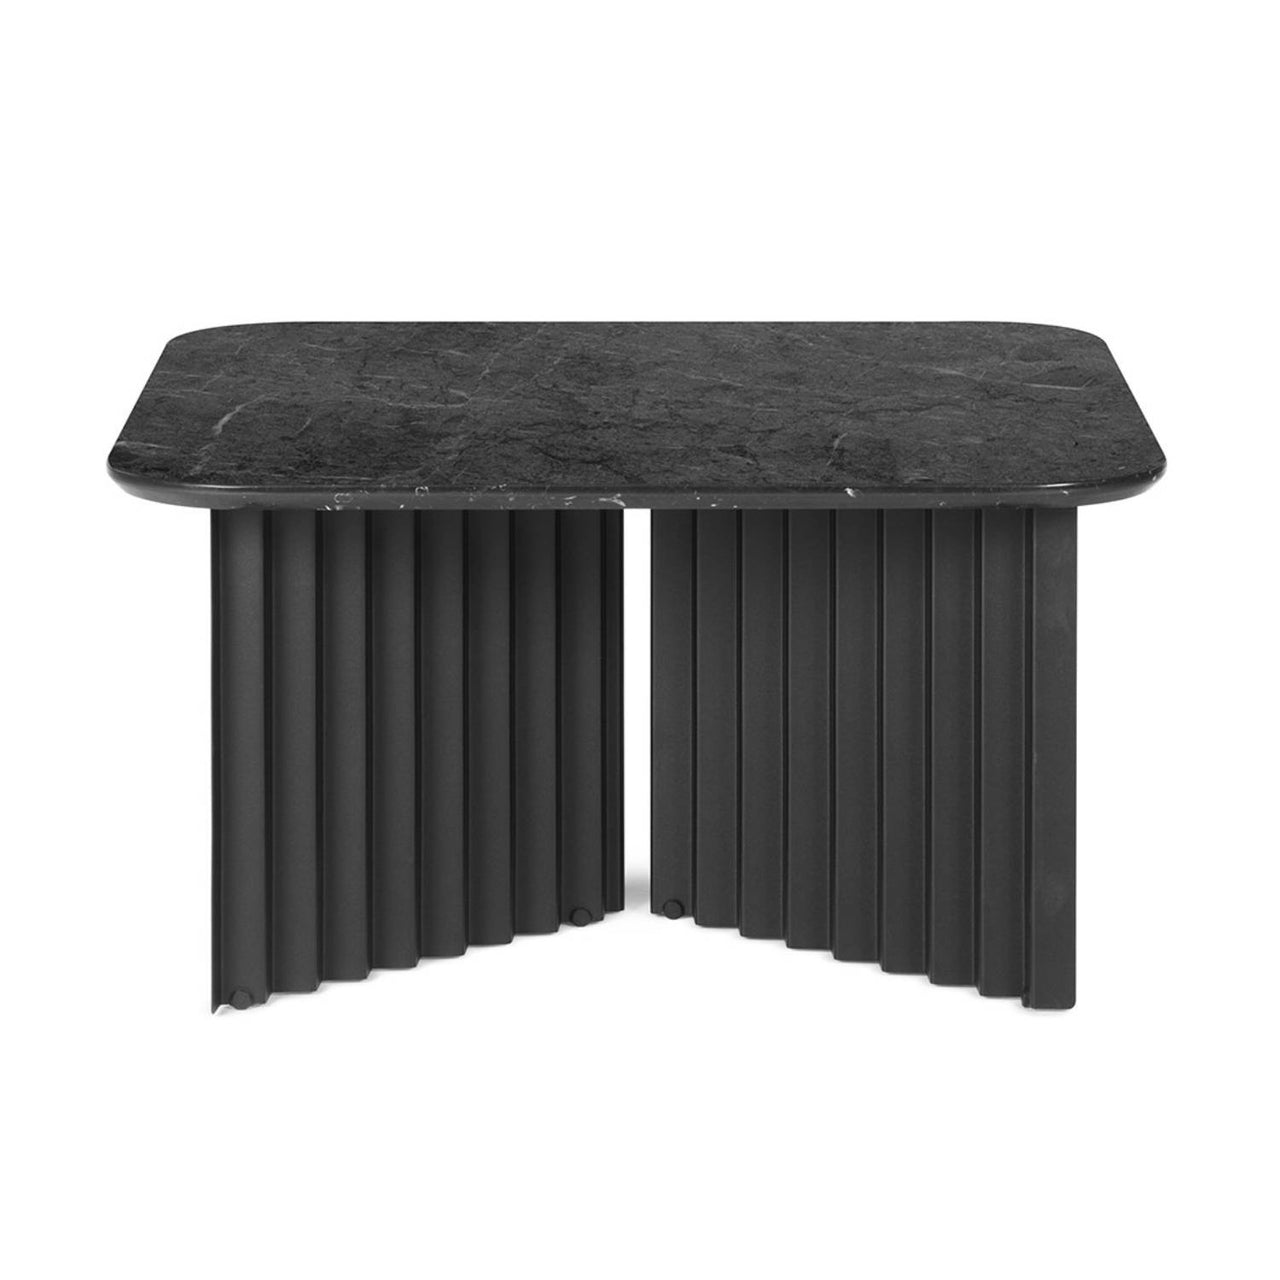 Plec Table: Marble Top: Medium + Black Marquina